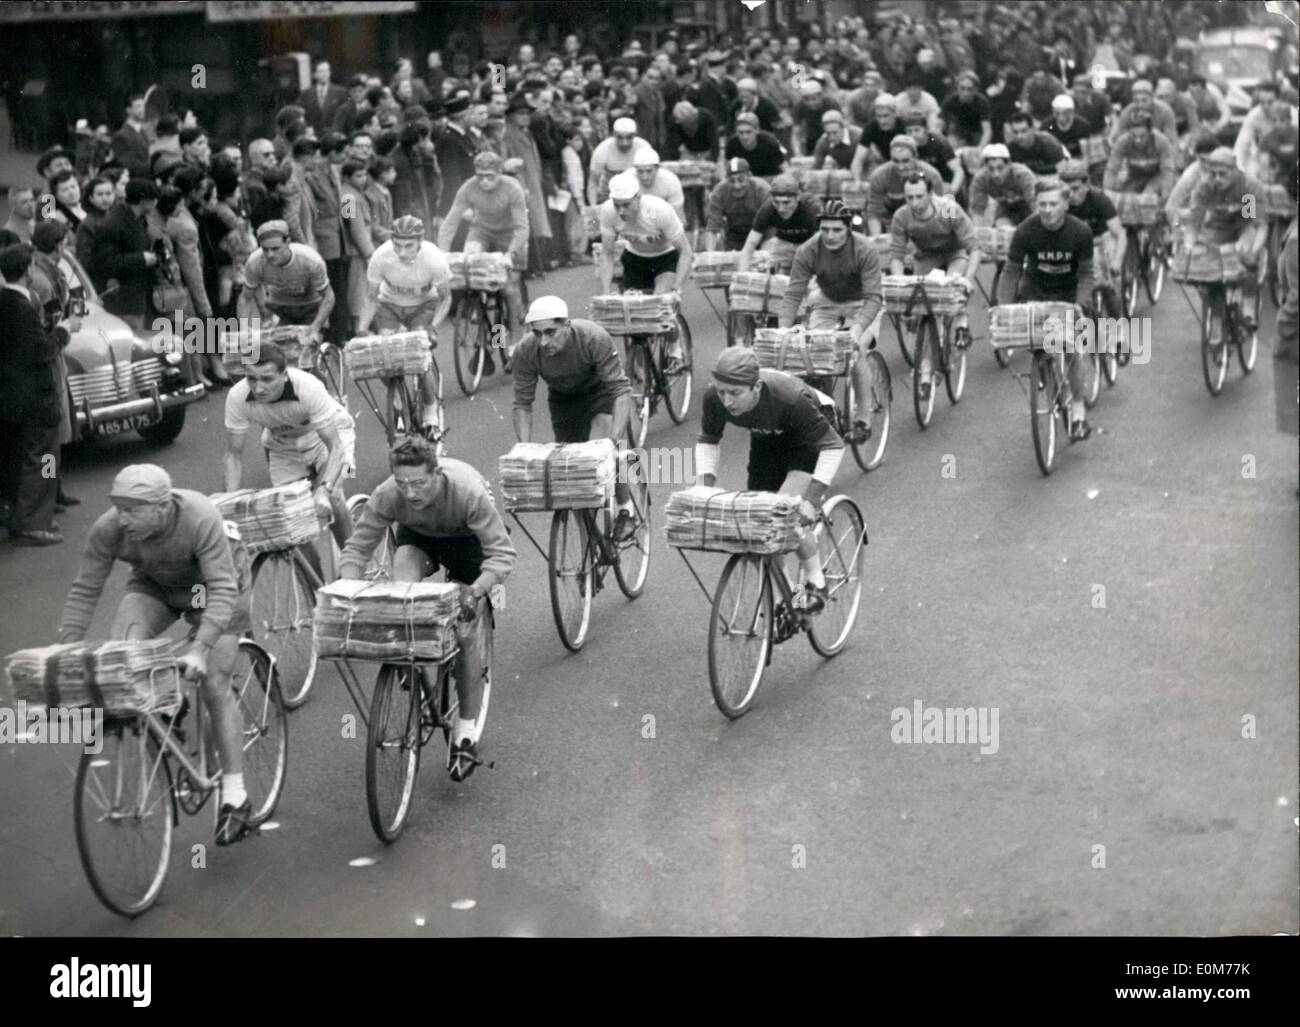 Nov. 11, 1953 - Newspaper Messengers In Annual Race Across Paris: The Start Of The Annual Newspaper Messengers' Race Across Paris This Morning. The Event Is Familiarly Known As The Race Of ''Those Who Are Always On The Road' - Stock Image